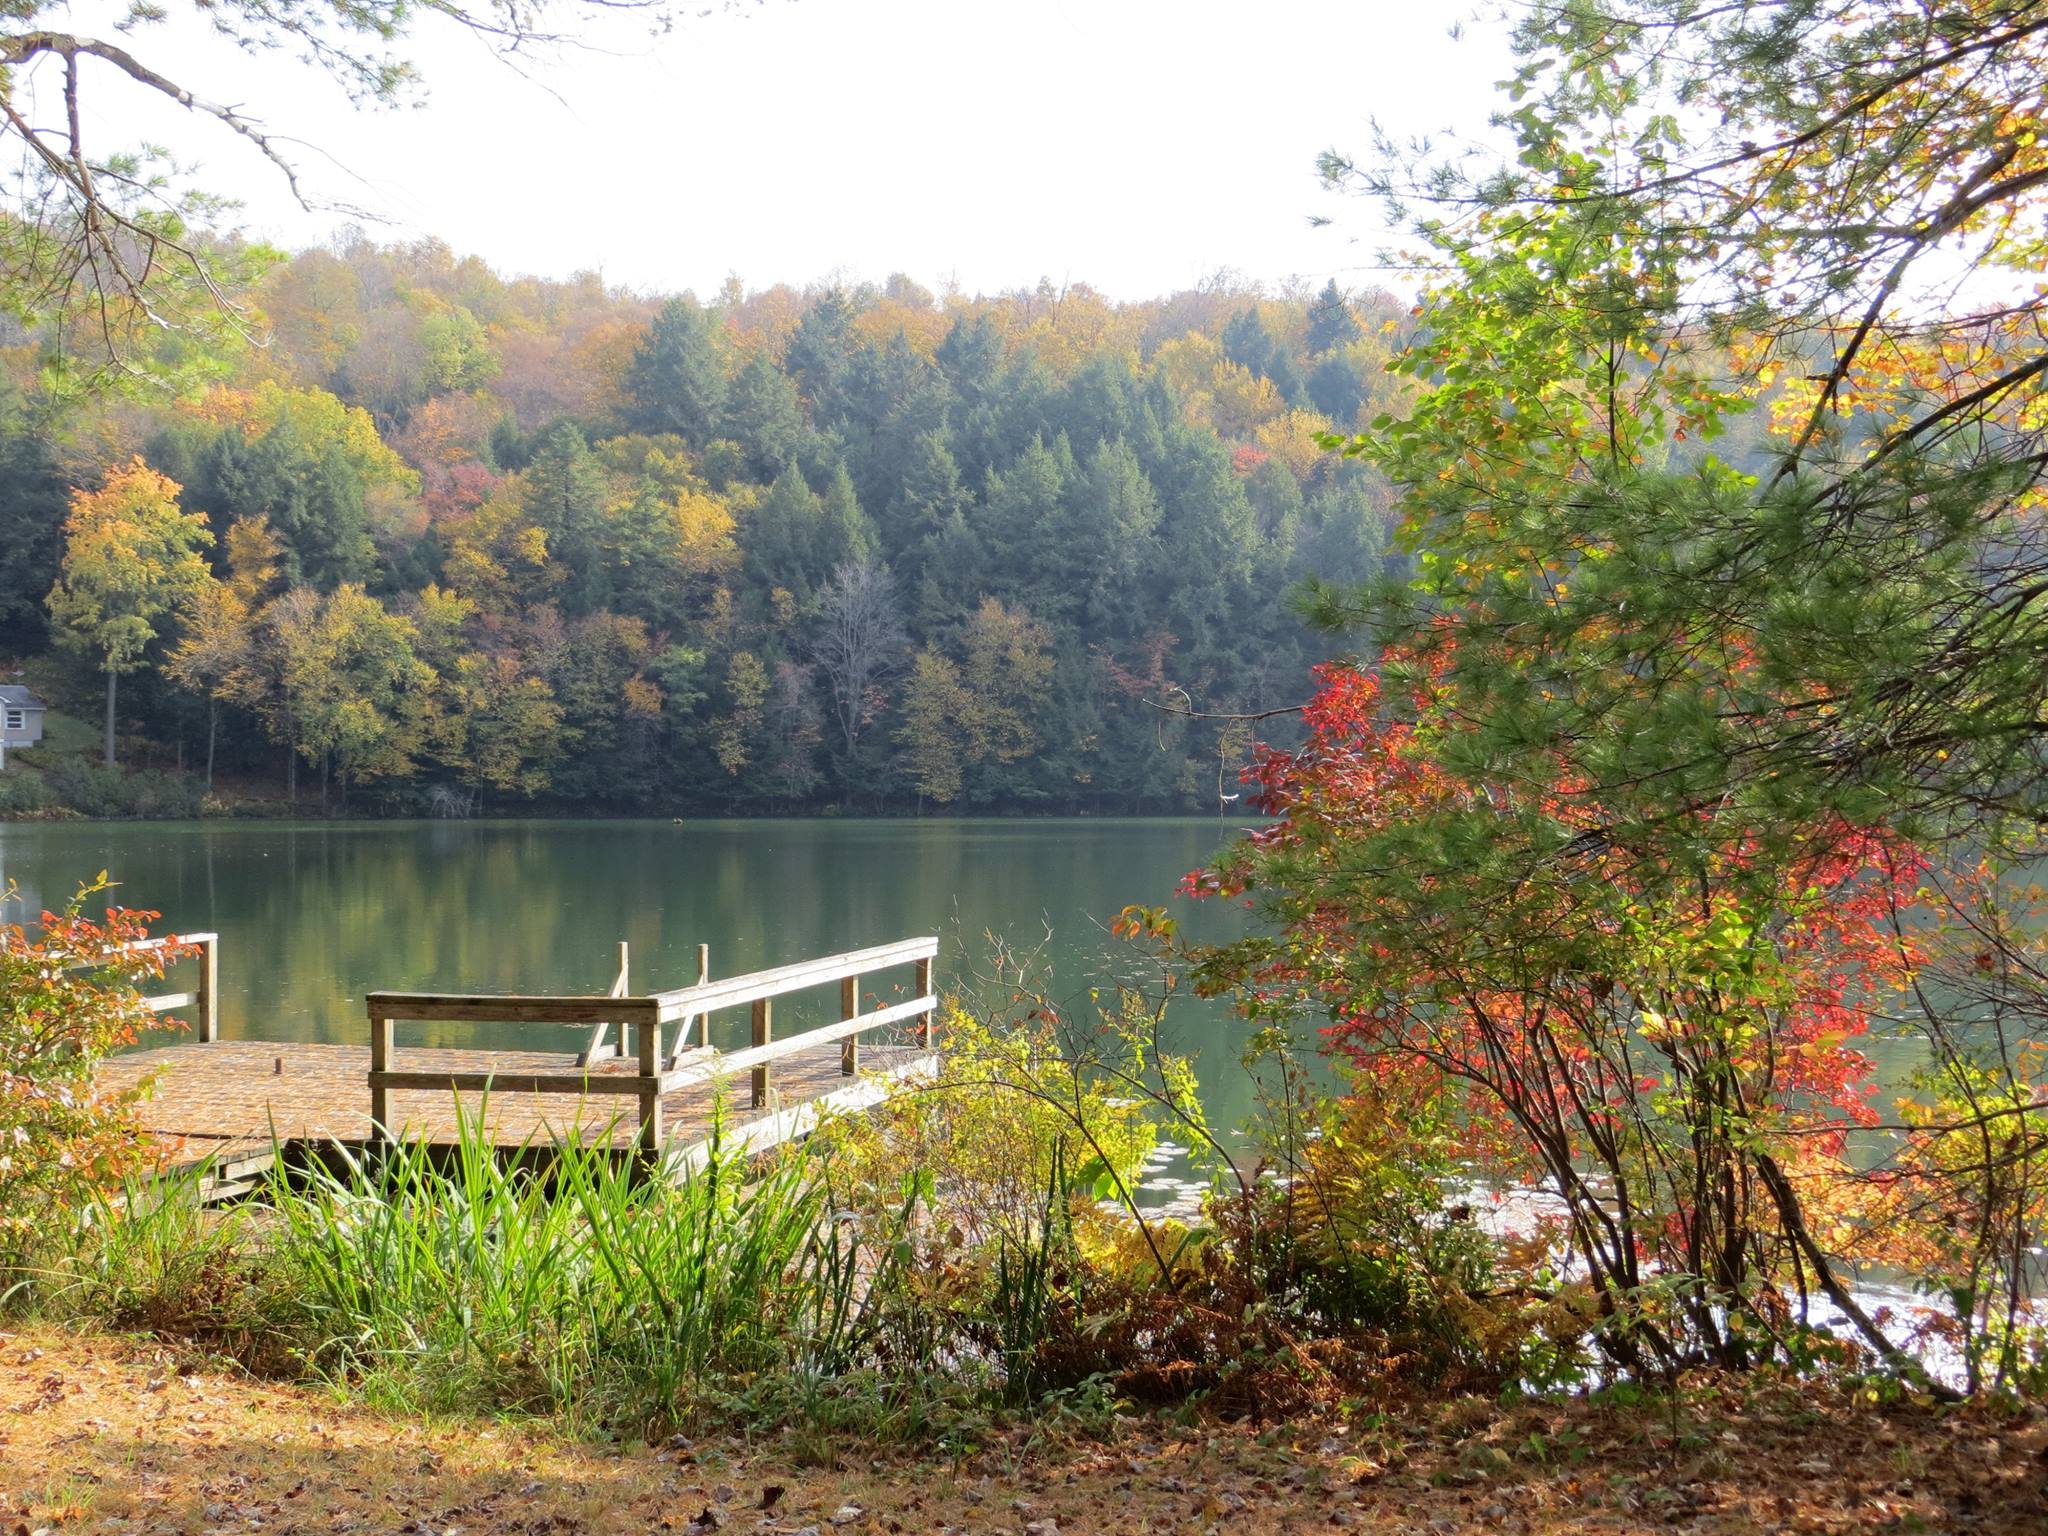 Dock on a lake in fall.